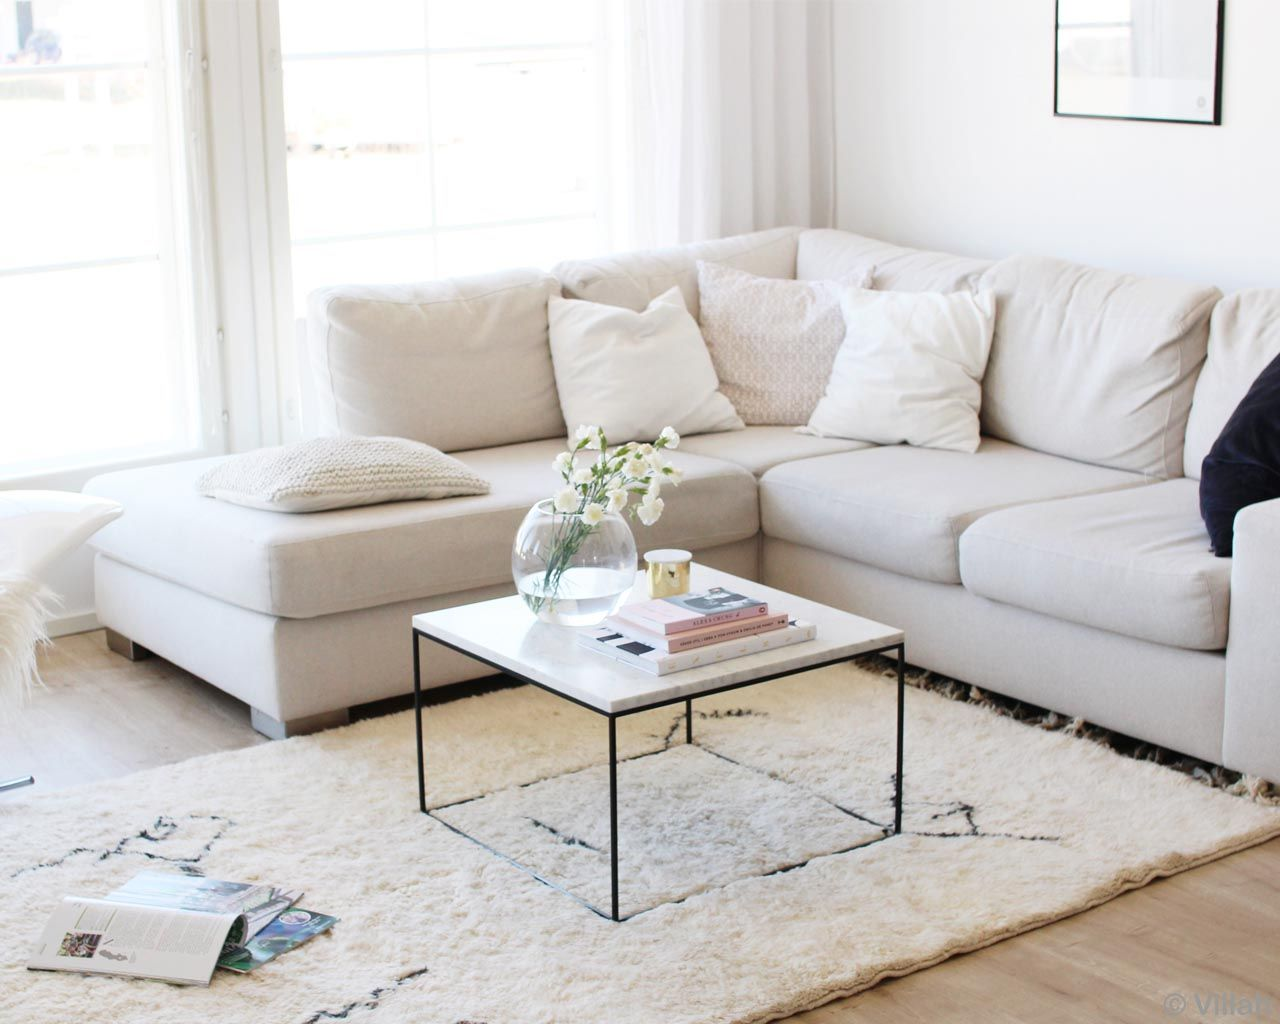 handmade white sofa with center table and magazine made in morocco contemporary colorful rugs